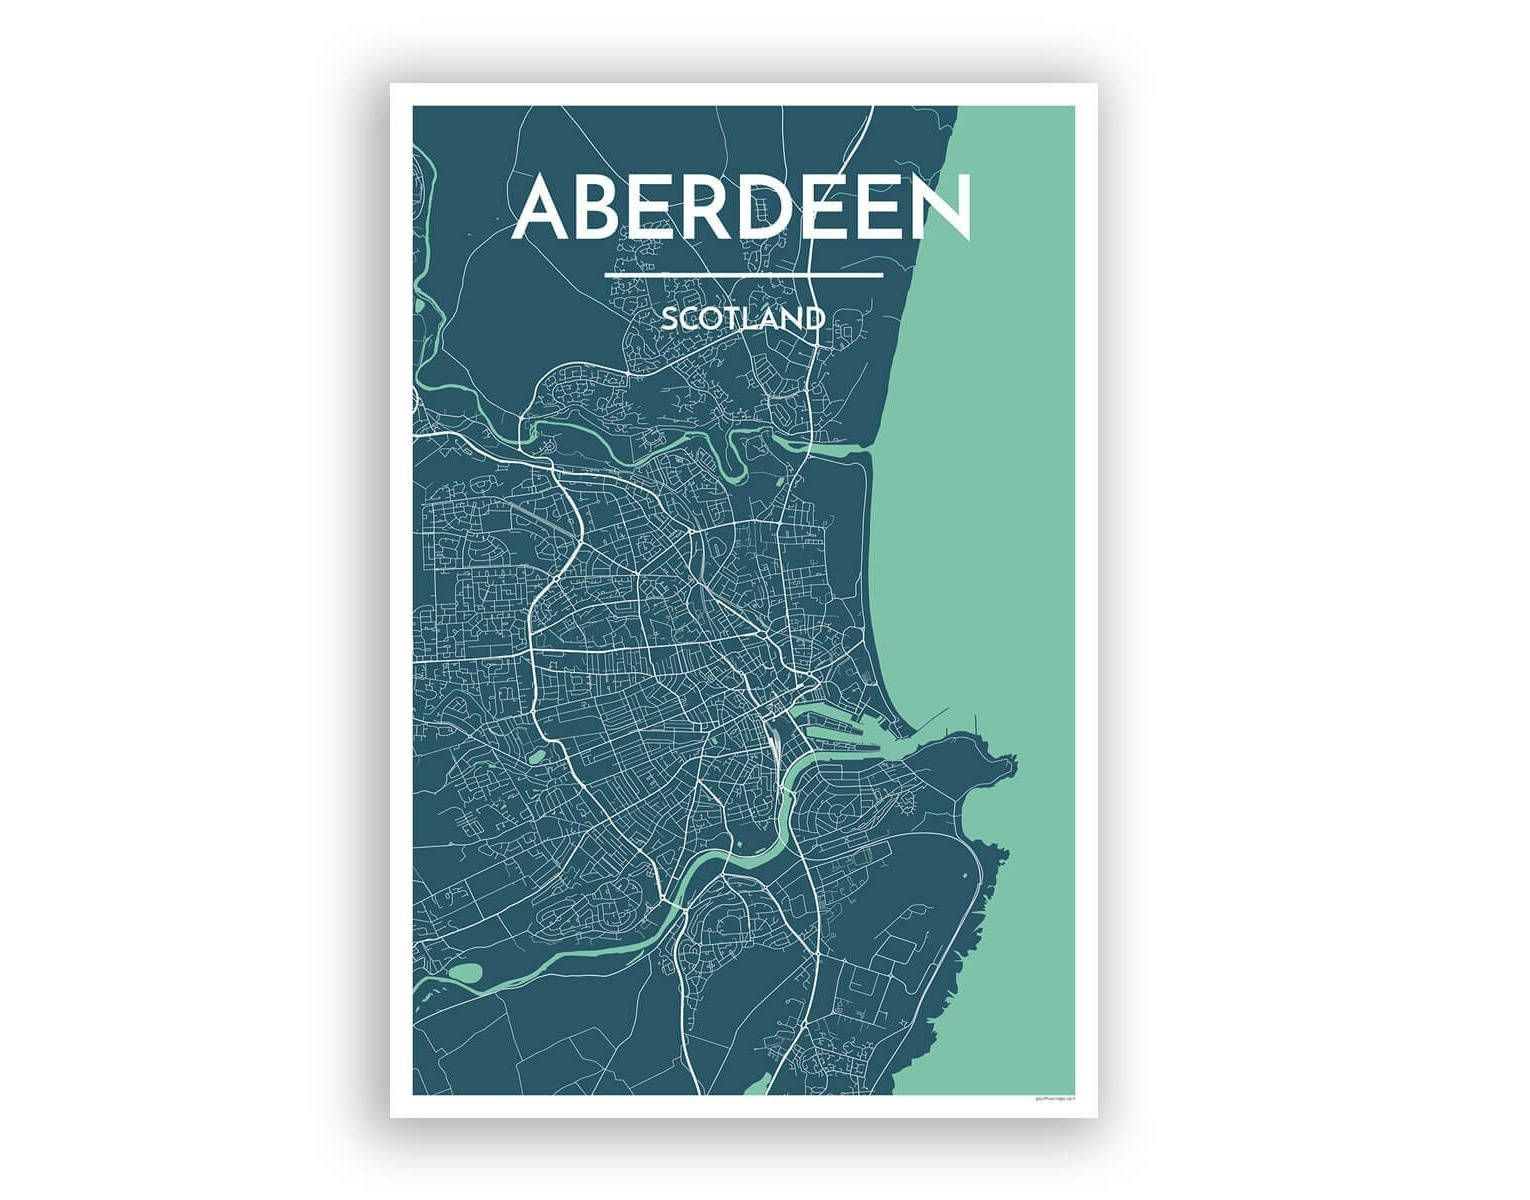 Aberdeen city map print printed via color press on high quality aberdeen city map print printed via color press on high quality 13x19 card stock prints are shipped rolled in a tube and are ready to hang on the wall as gumiabroncs Image collections